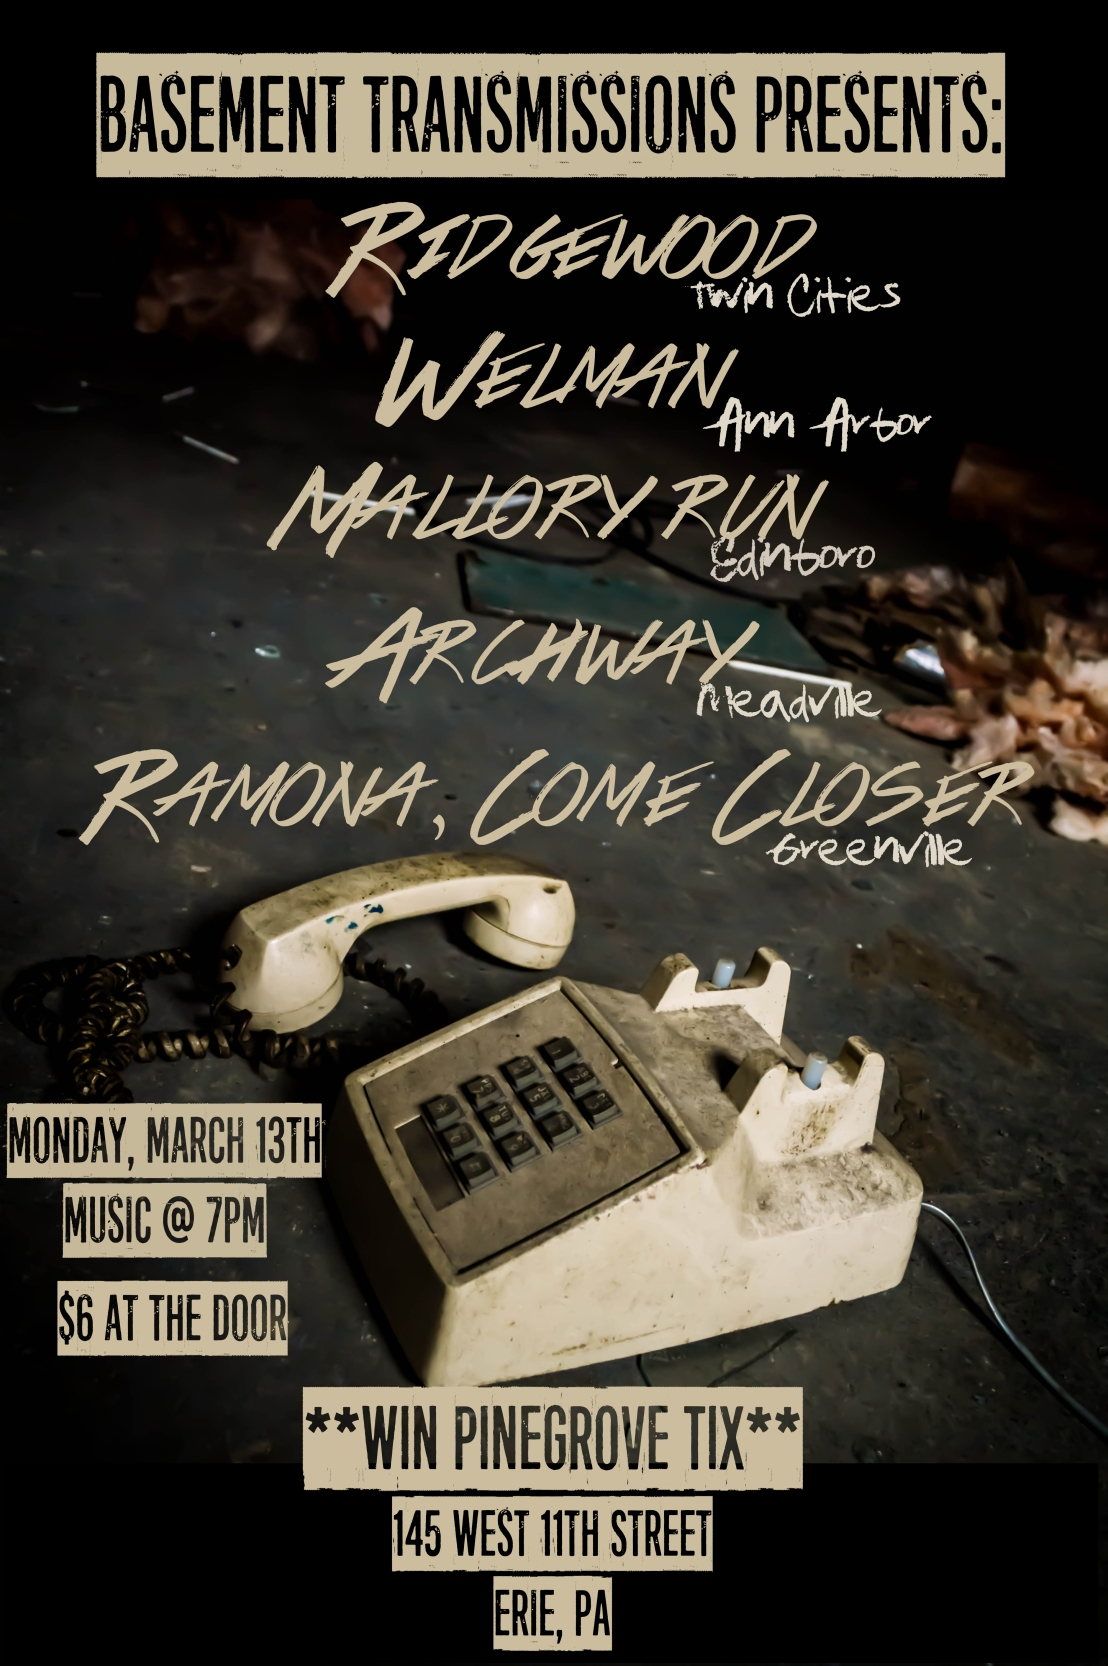 Coming up on March 13th 2017: Ridgewood, Welman, Mallory Run, Archway, and Ramona, Come Closer (and a chance to win tickets to a sold-out Pinegrove show!)